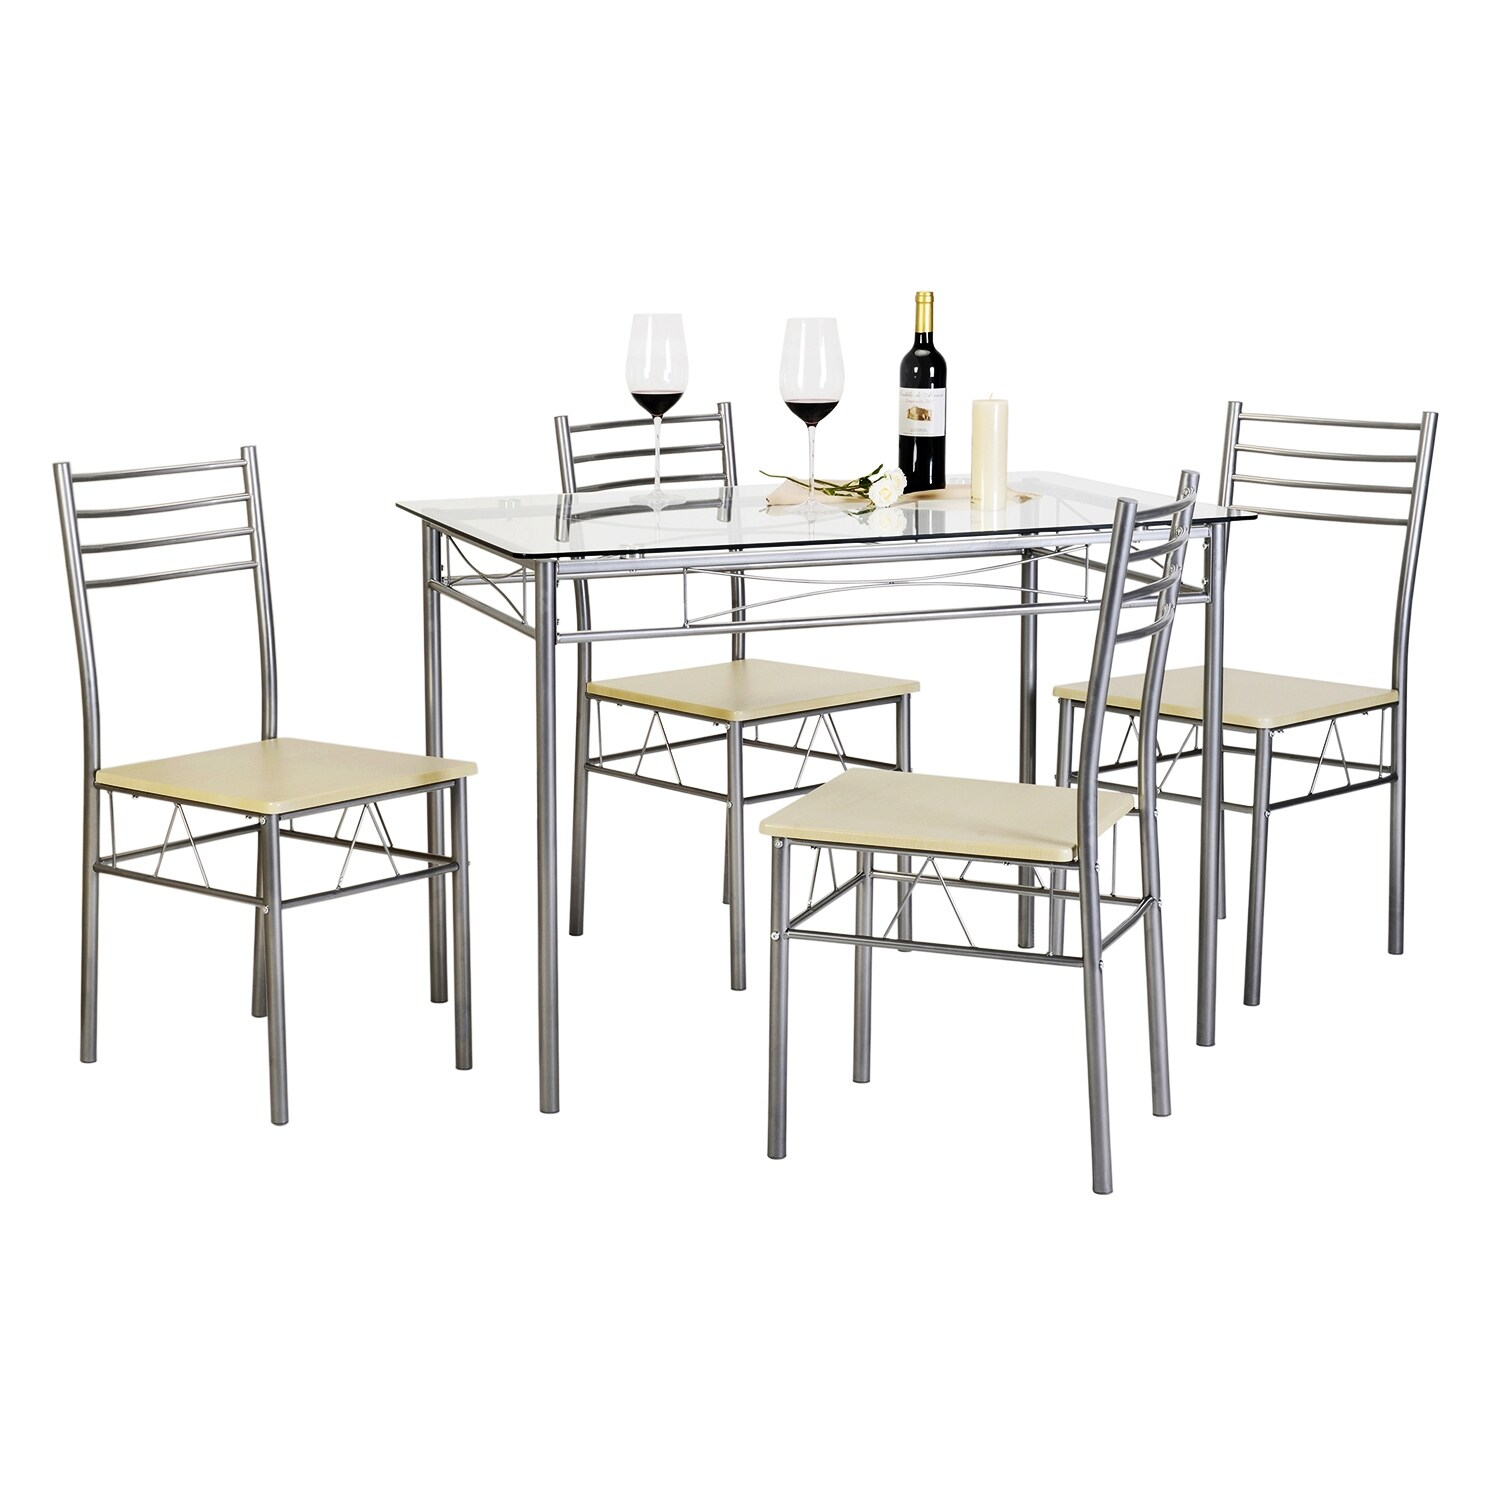 Kitchen Dining Table Set,Glass Table And 4 Chairs(Black/Silver) (